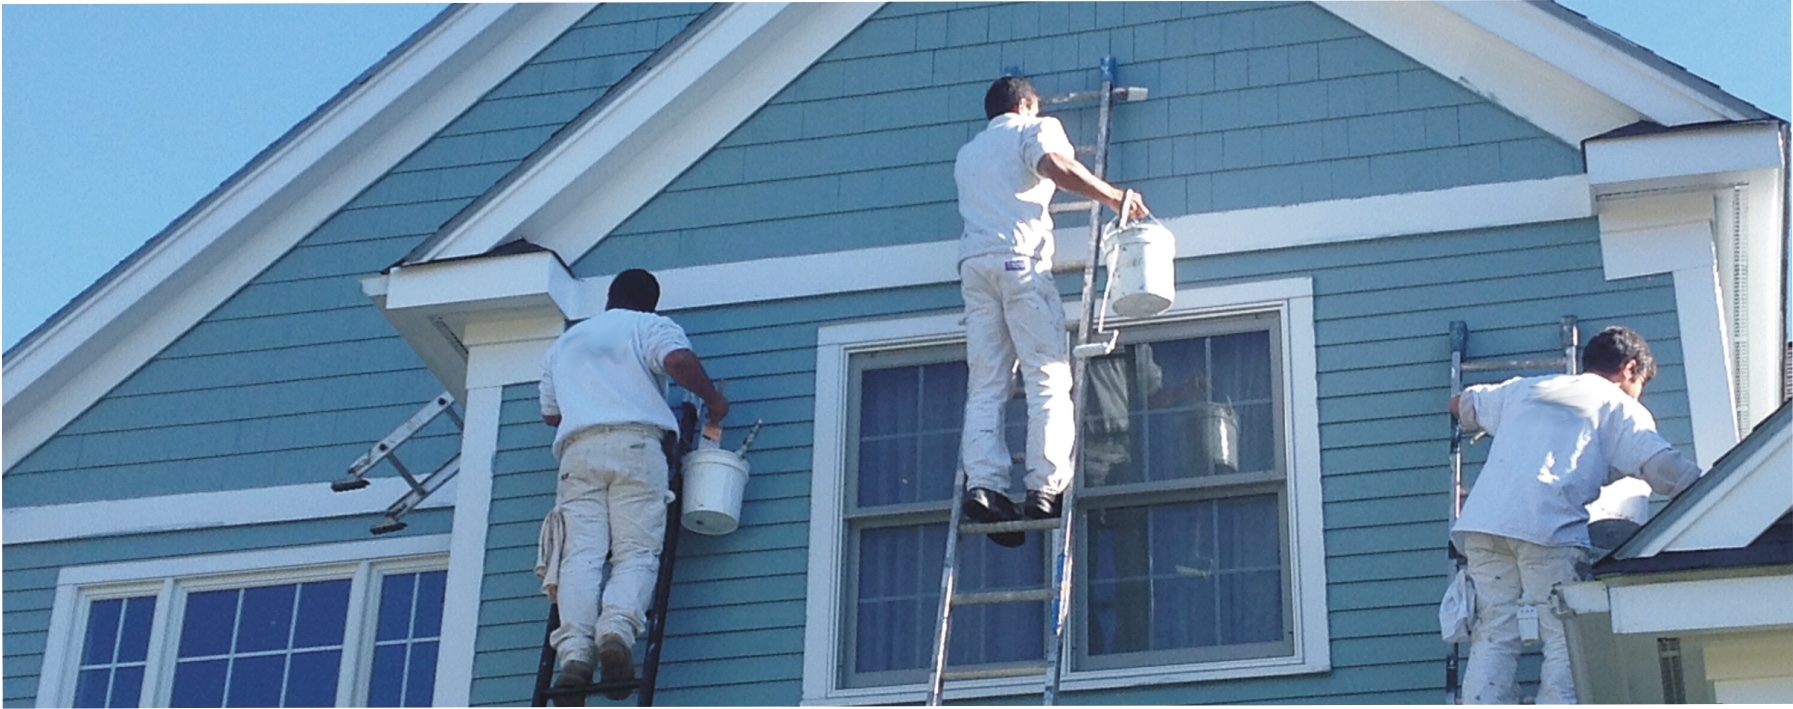 Find a reliable Painter for your painting Job